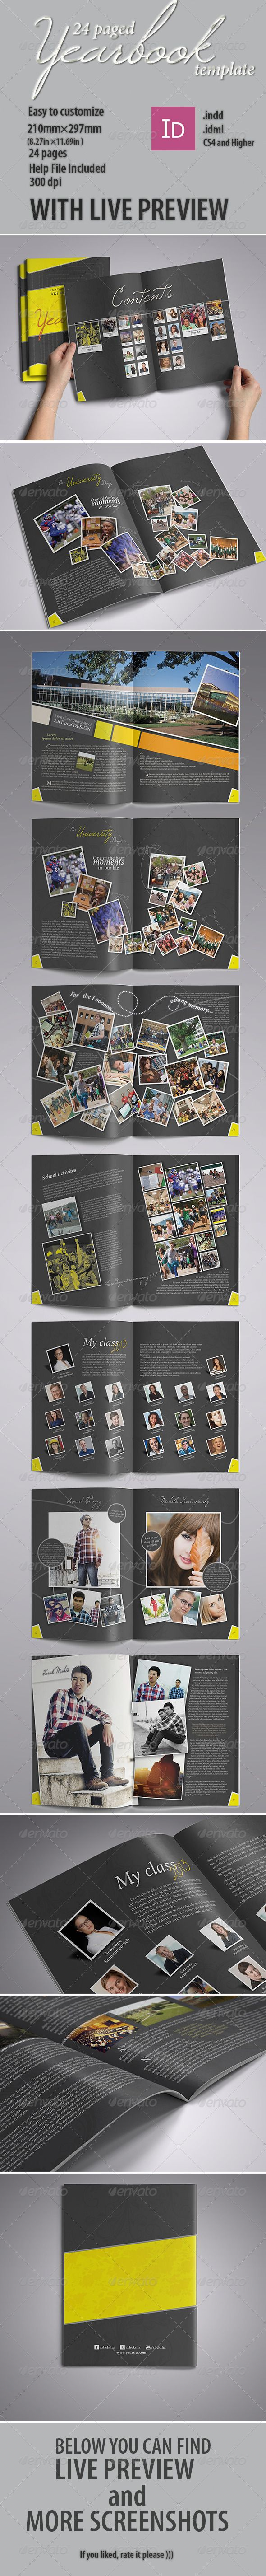 Modern Yearbook Template - #Photo #Albums Print #Templates Download here:  https://graphicriver.net/item/modern-yearbook-template/4855371?ref=alena994